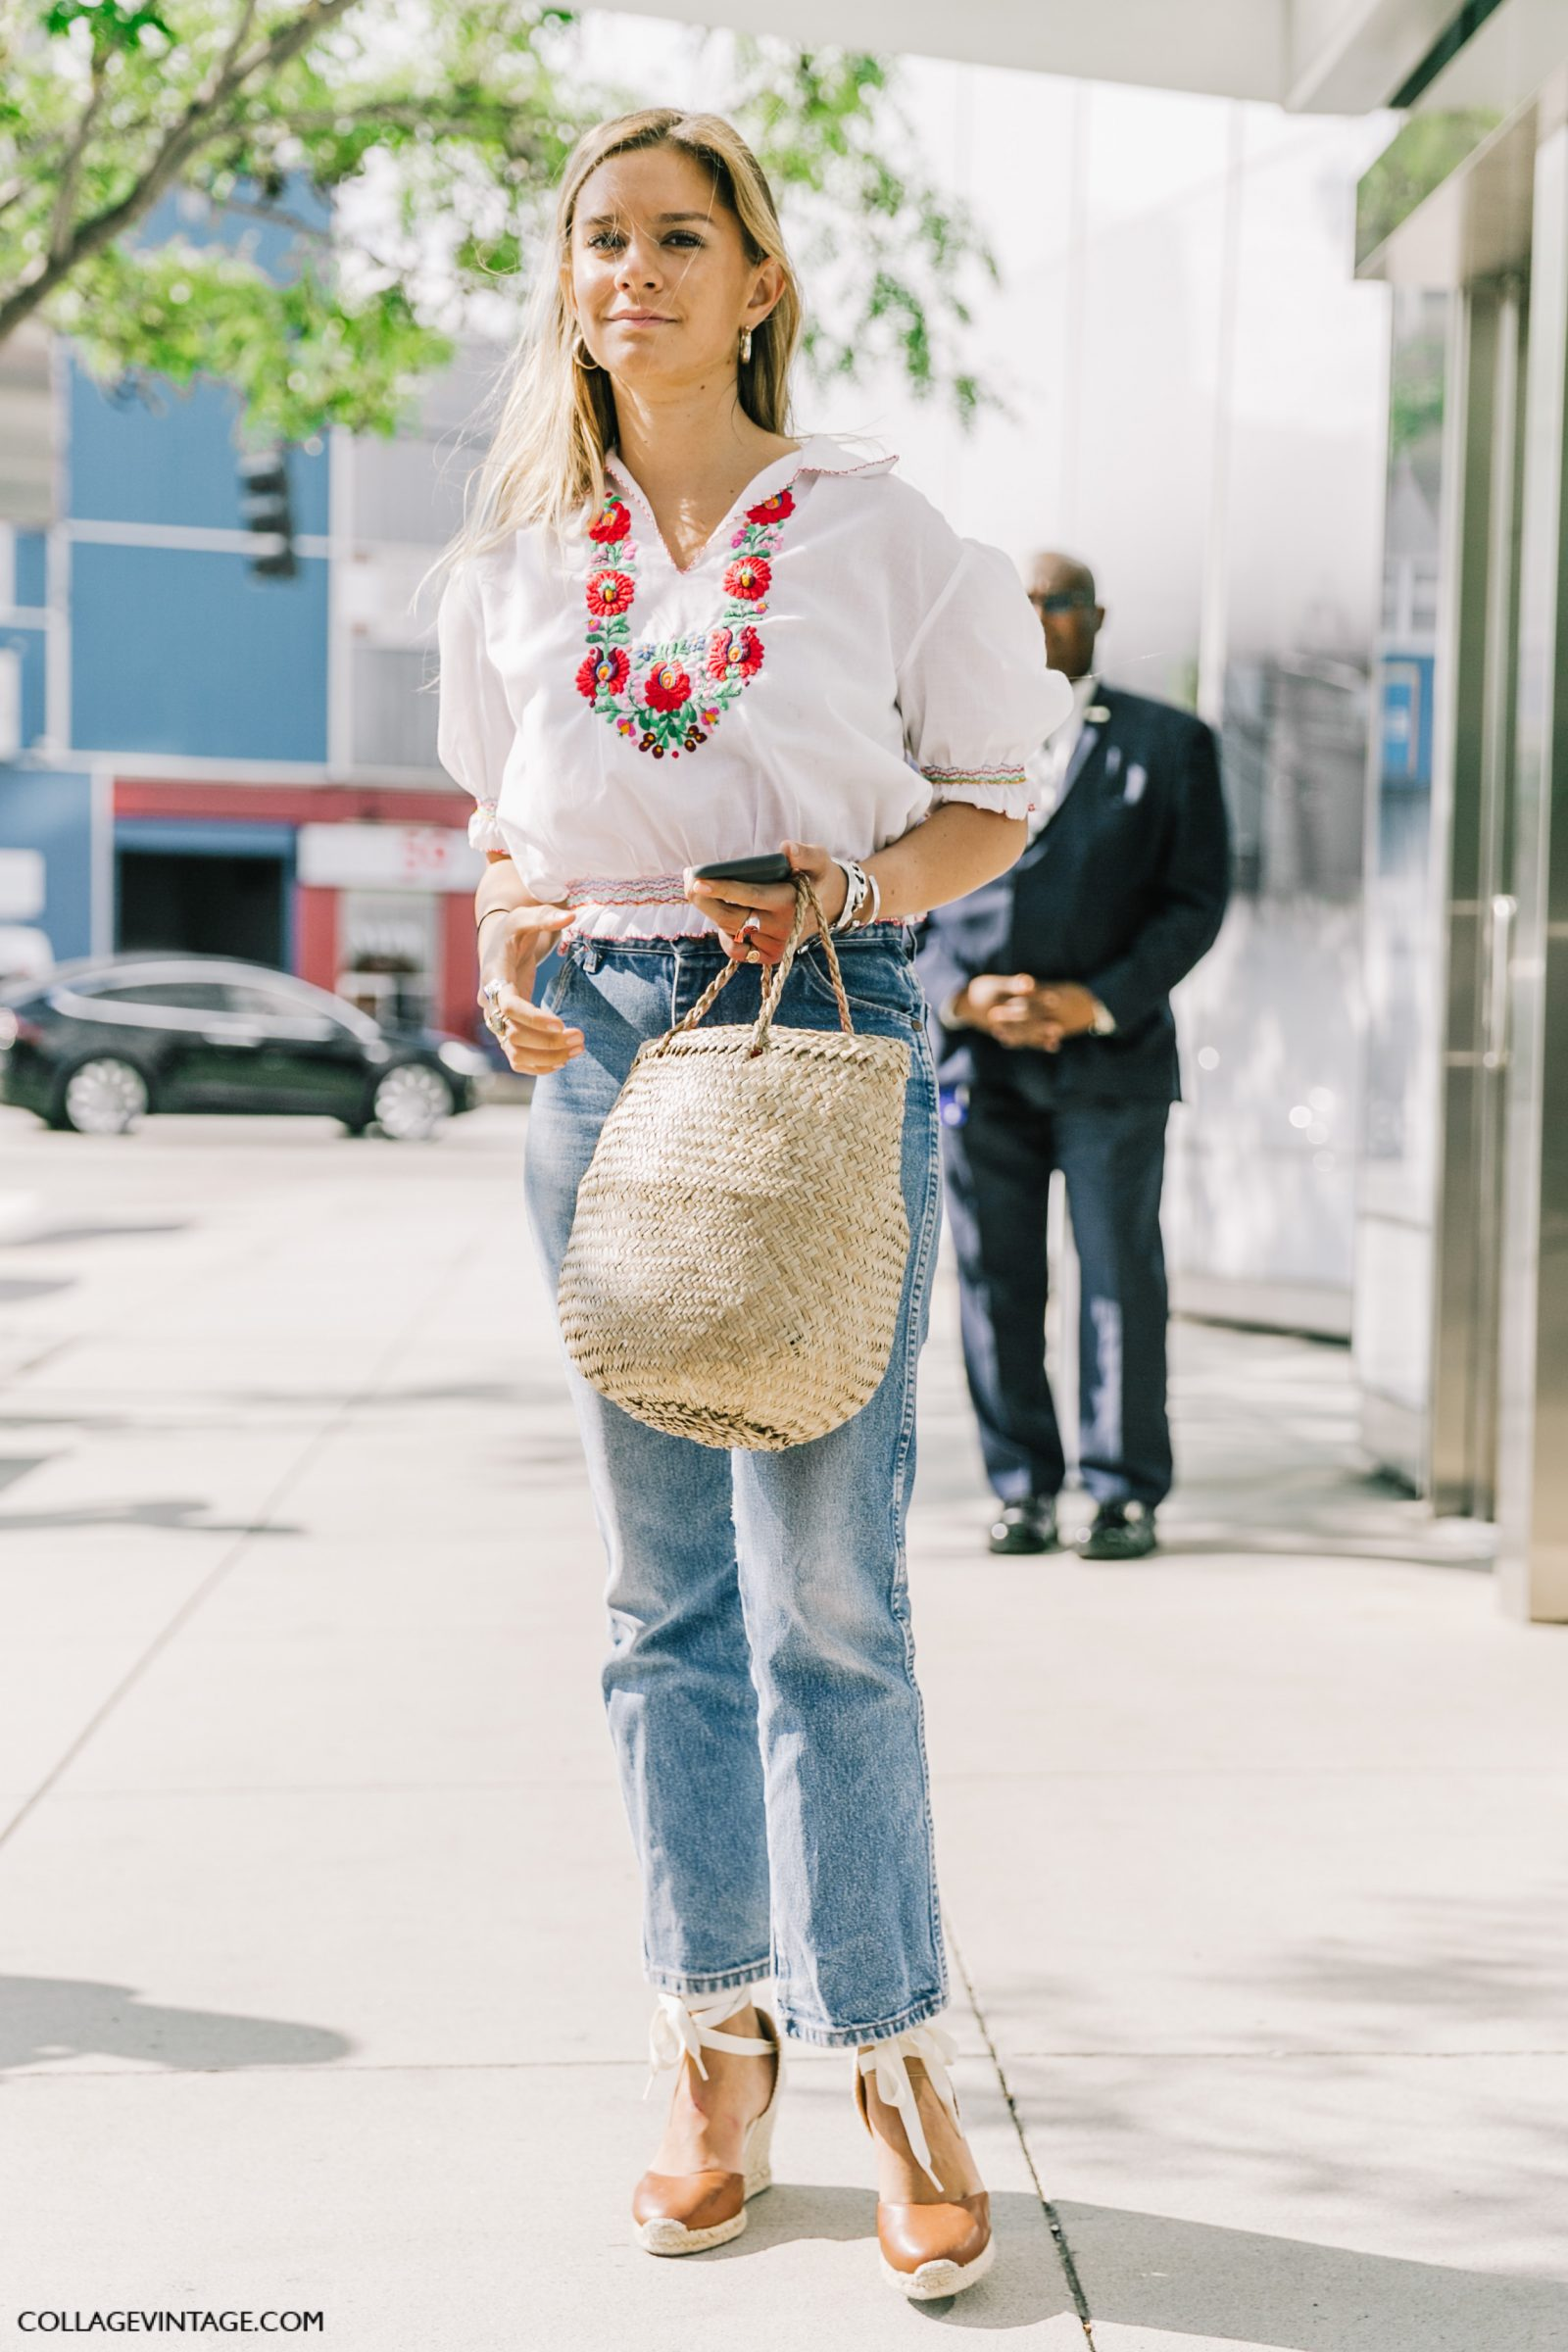 nyfw-new_york_fashion_week_ss17-street_style-outfits-collage_vintage-vintage-mansur_gavriel-rodarte-coach-128